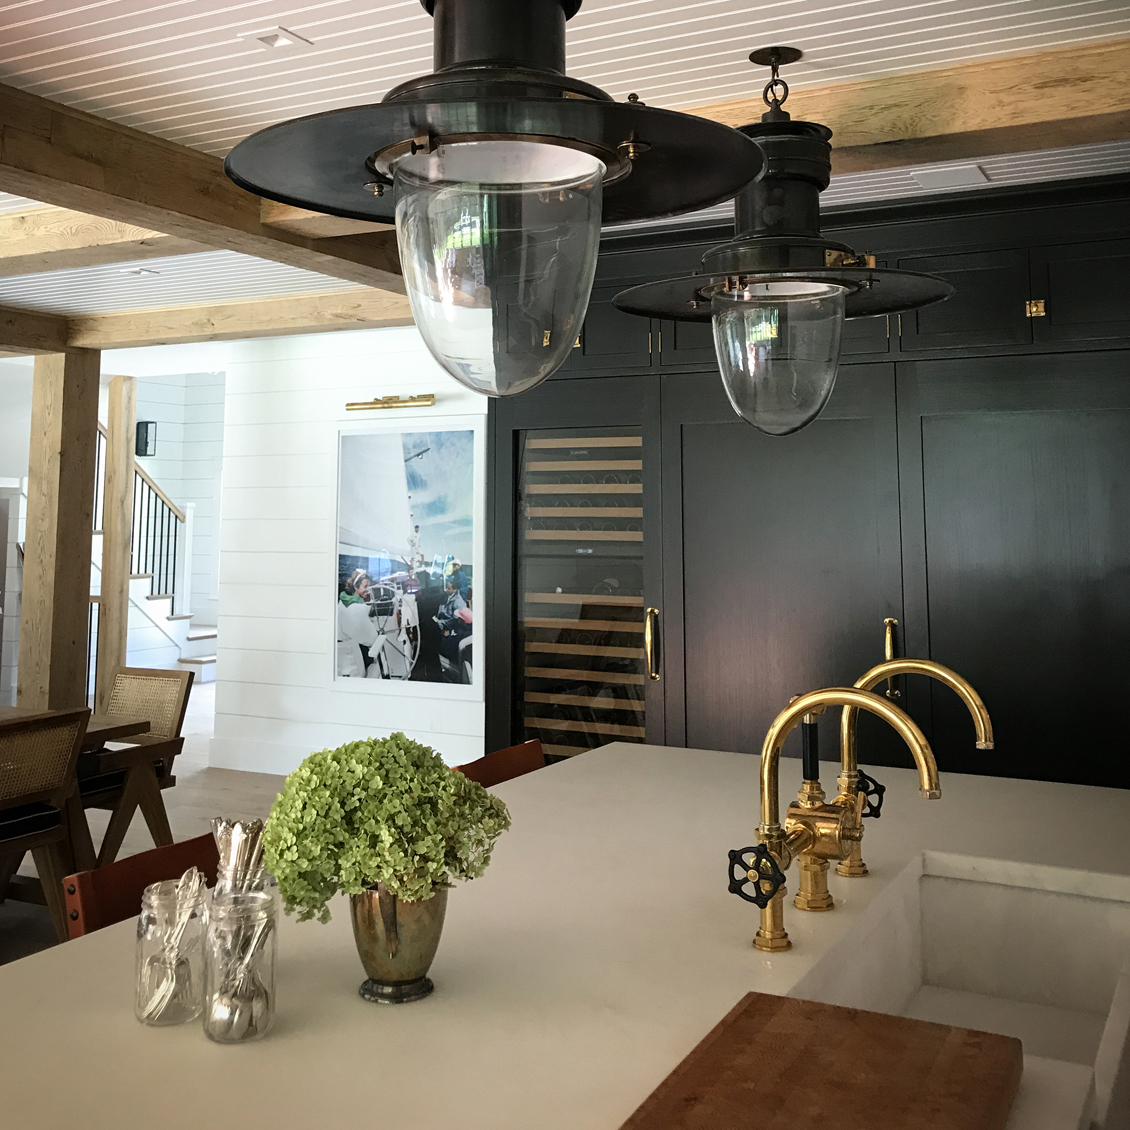 waterworks regulator faucet and industrial pendant lights